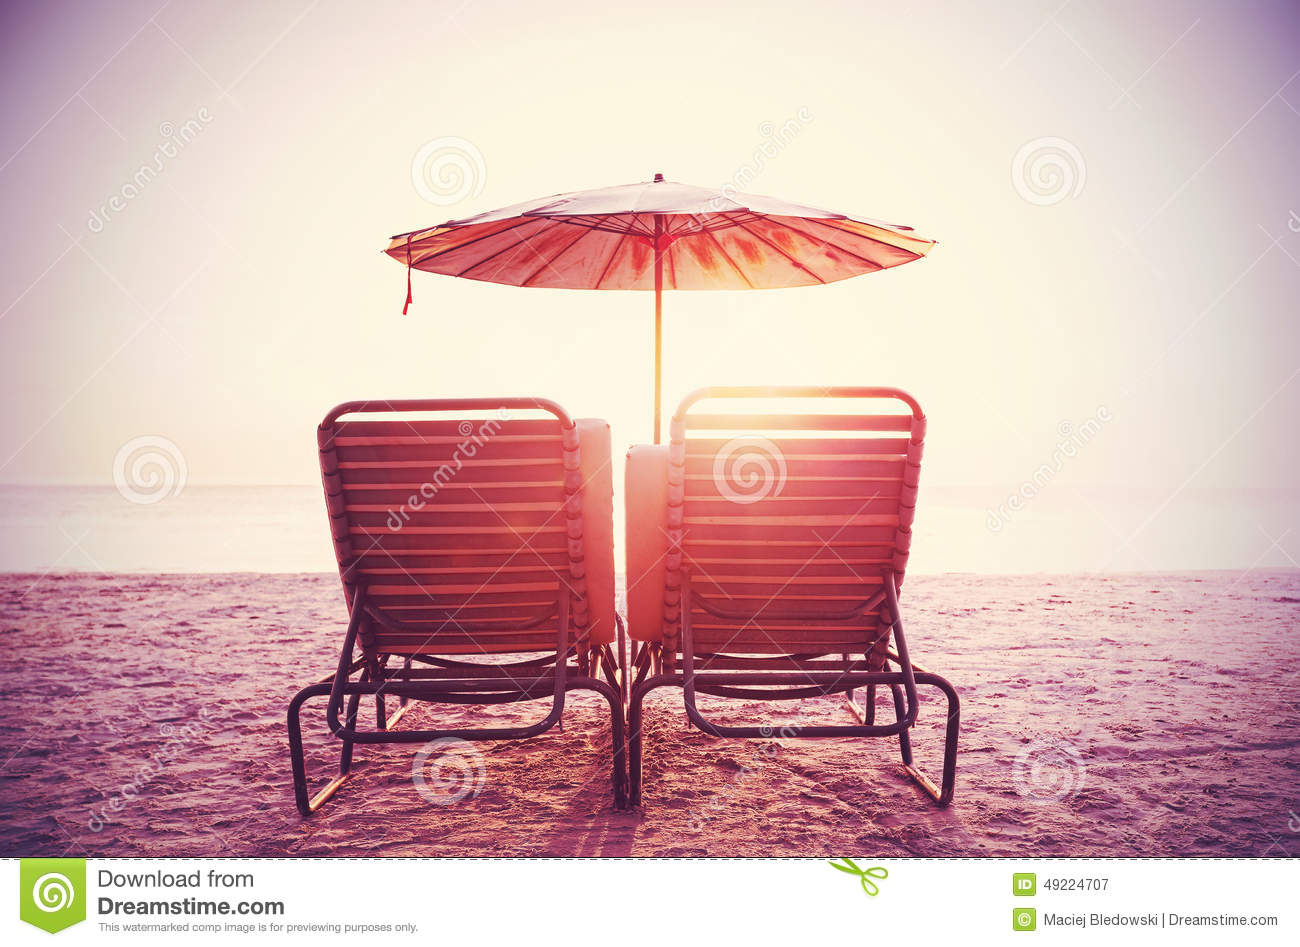 Retro Filtered Picture Of Beach Chairs And Umbrella On